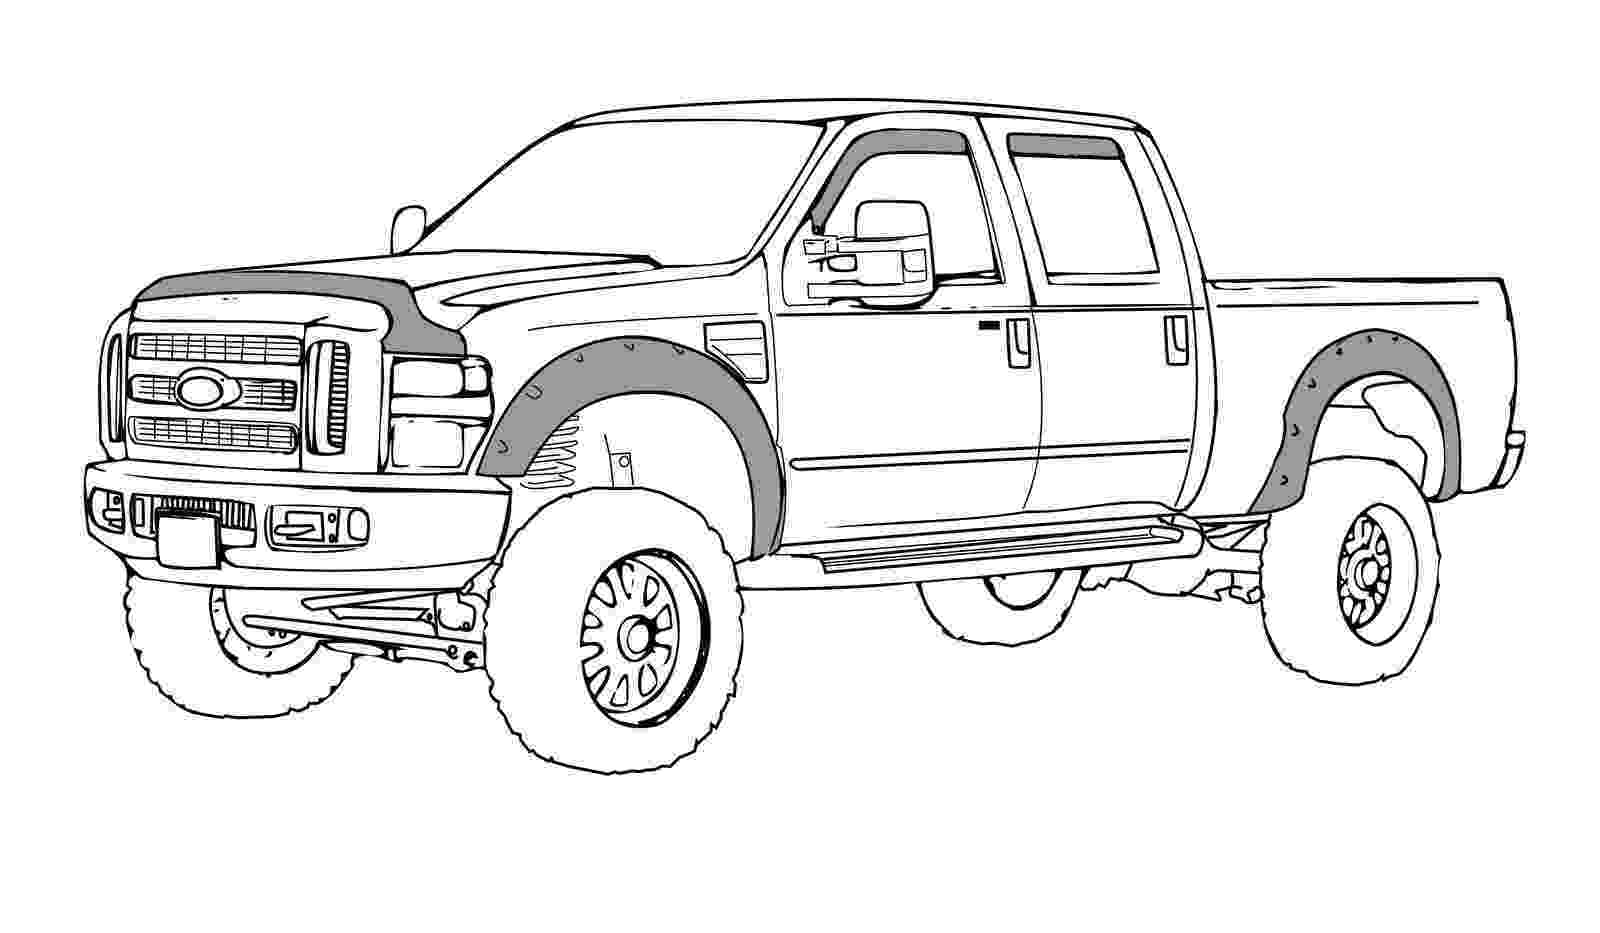 coloring pages of cars and trucks pin by muriel wright on trucks trucks drawings color pages of coloring and cars trucks